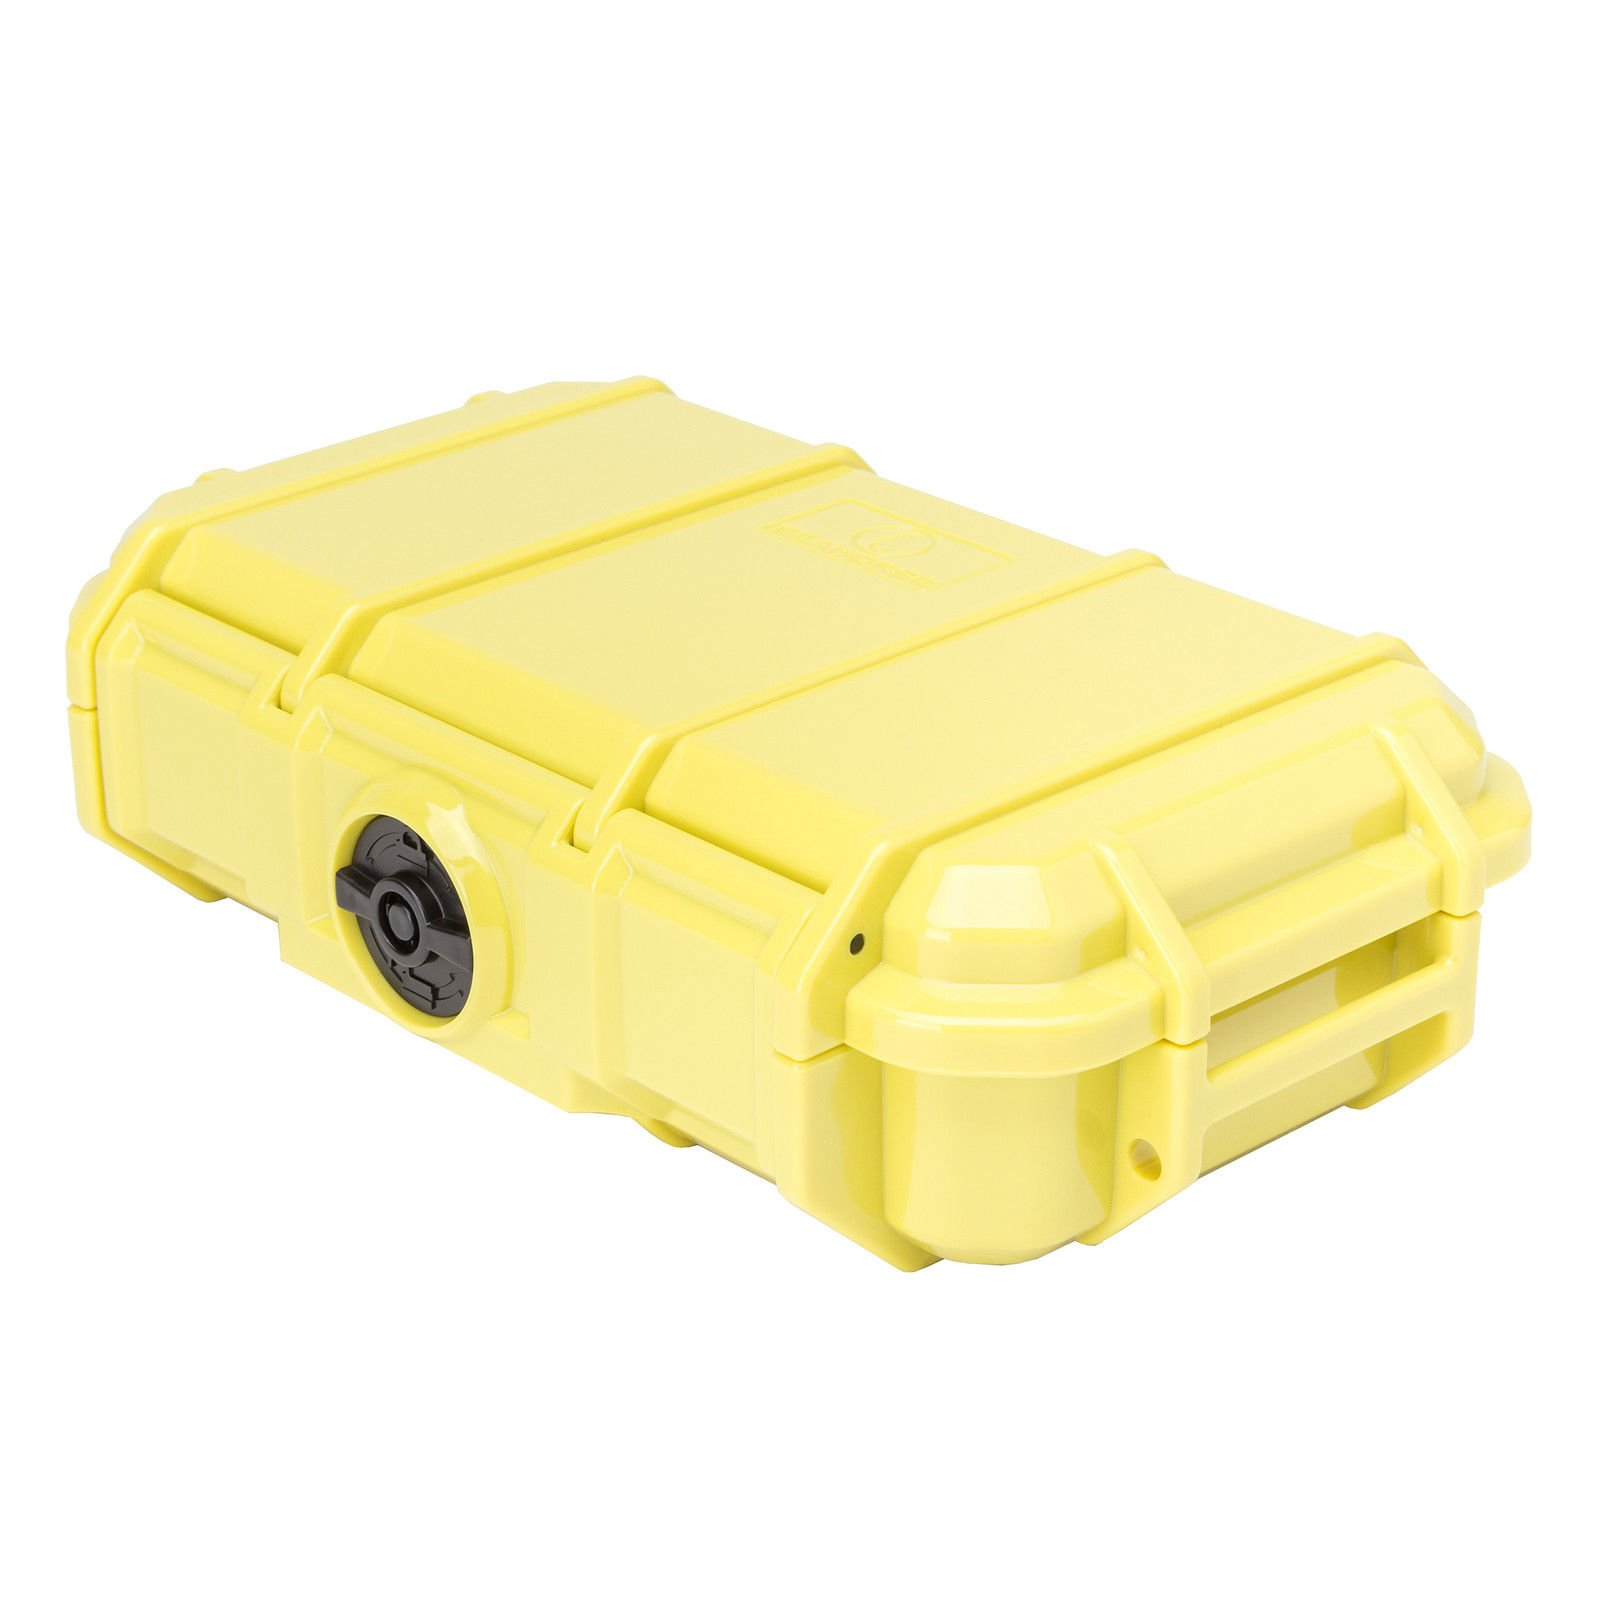 MRT SUPPLY Watertight Crush-Resistant Protective Micro Storage Case, Yellow with Ebook